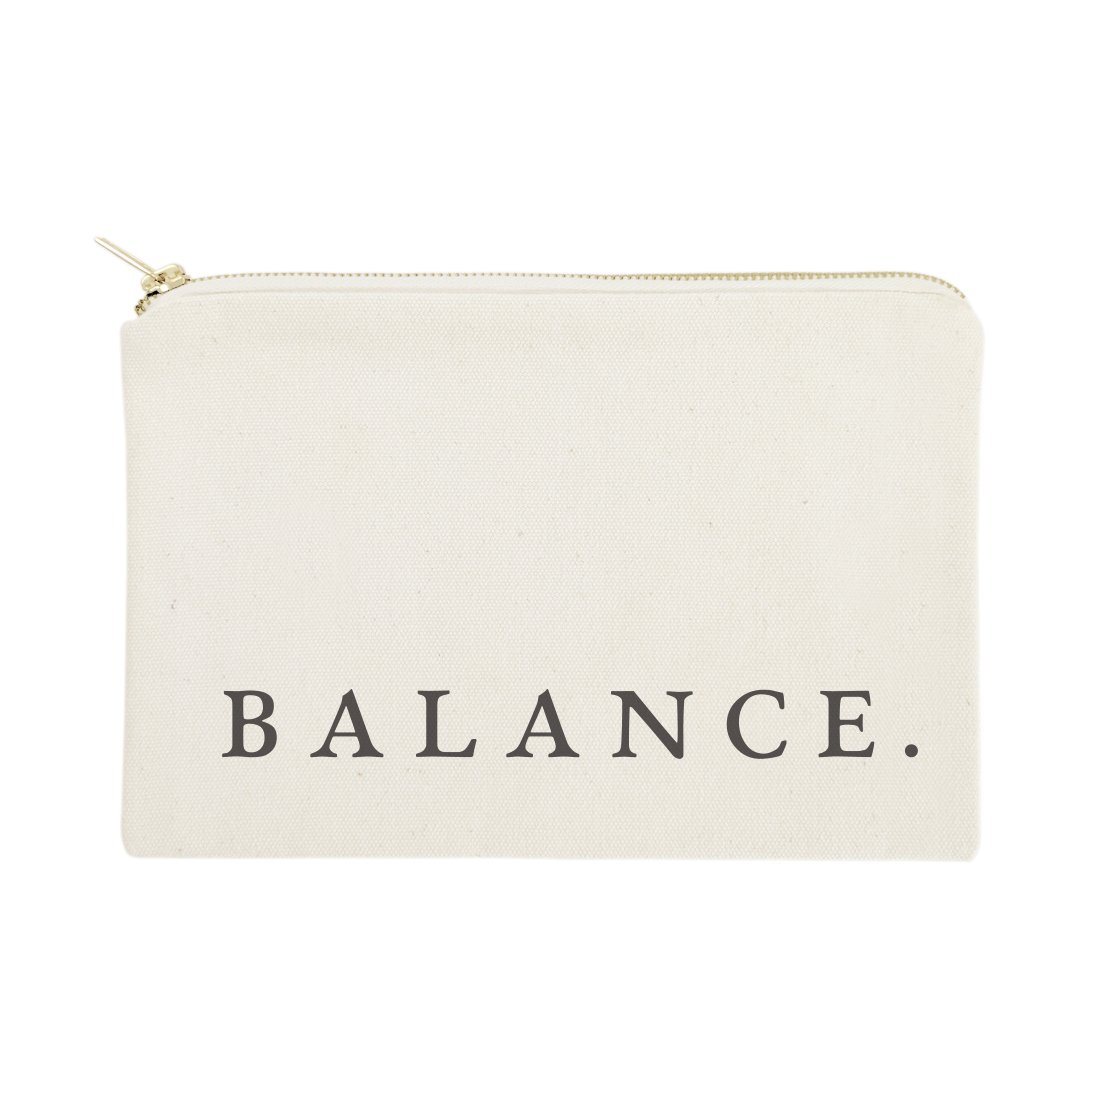 The Cotton & Canvas Co. Balance Cosmetic Bag and Travel Make Up Pouch